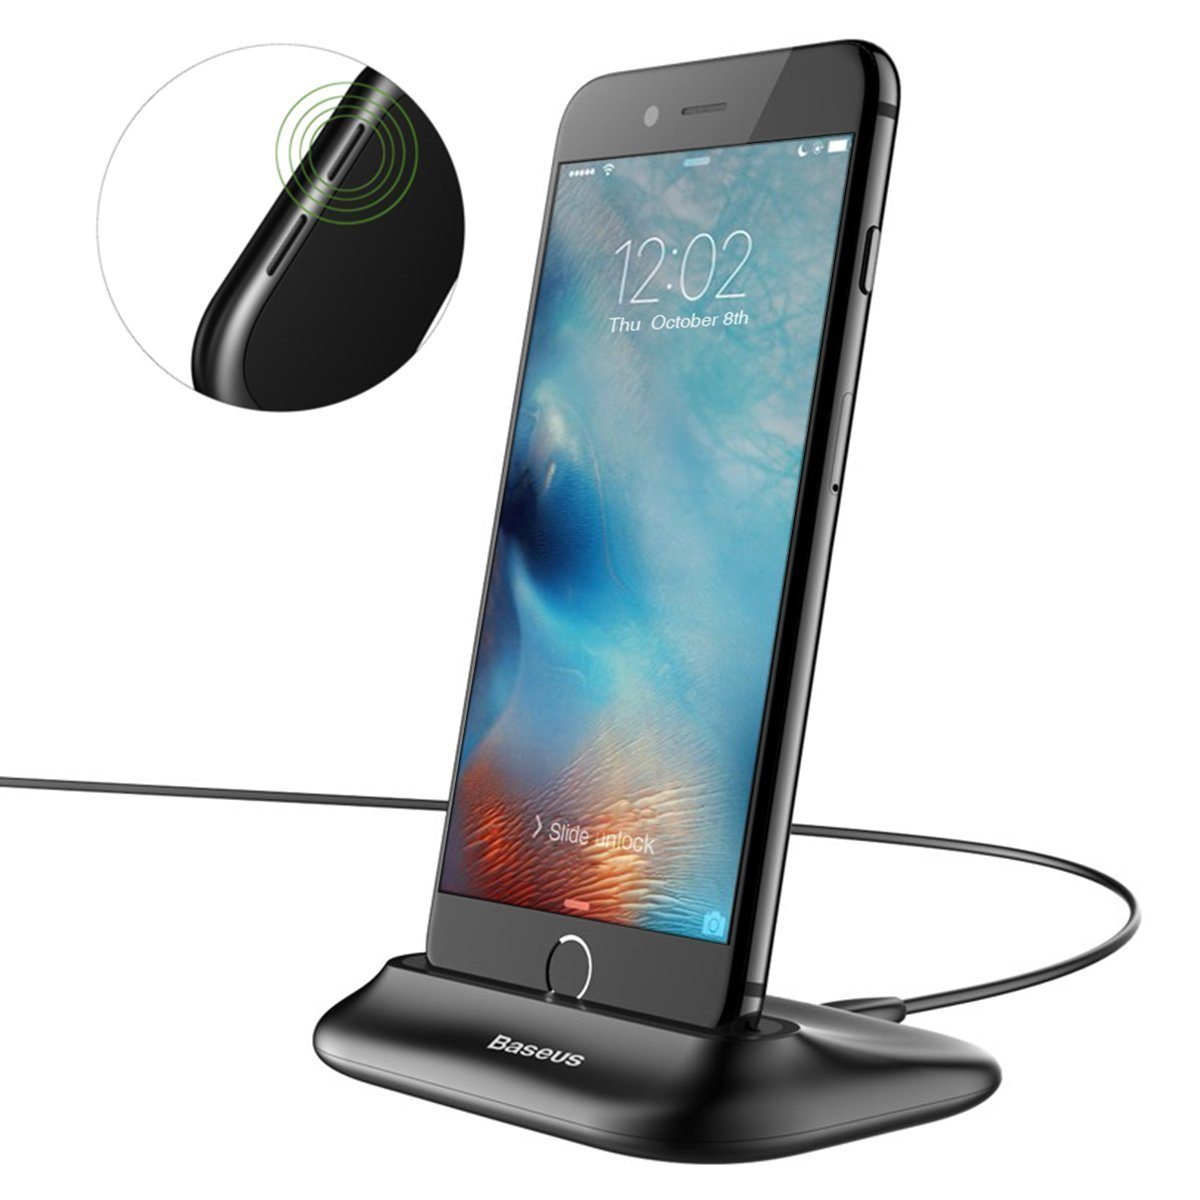 iPhone Charging Stand, Hizek Charging Dock Charger Stand Cradle Smartphone Holder for iPhone iPhone X/8/8Plus/7/7 Plus/6s/6/5/SE(Black)